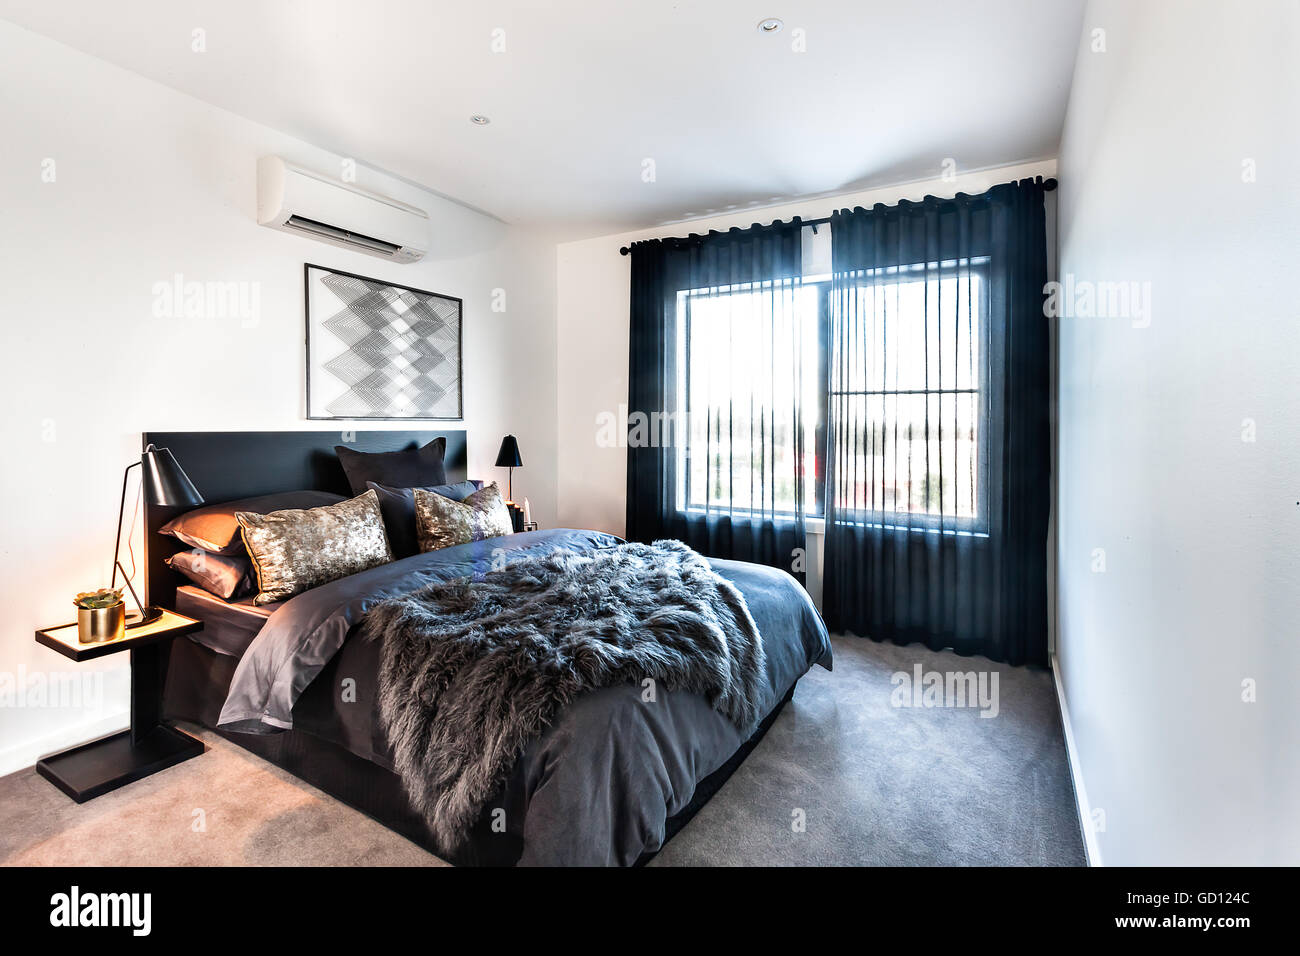 . Luxury bedroom with fur bed sheet on the master bed with pillows